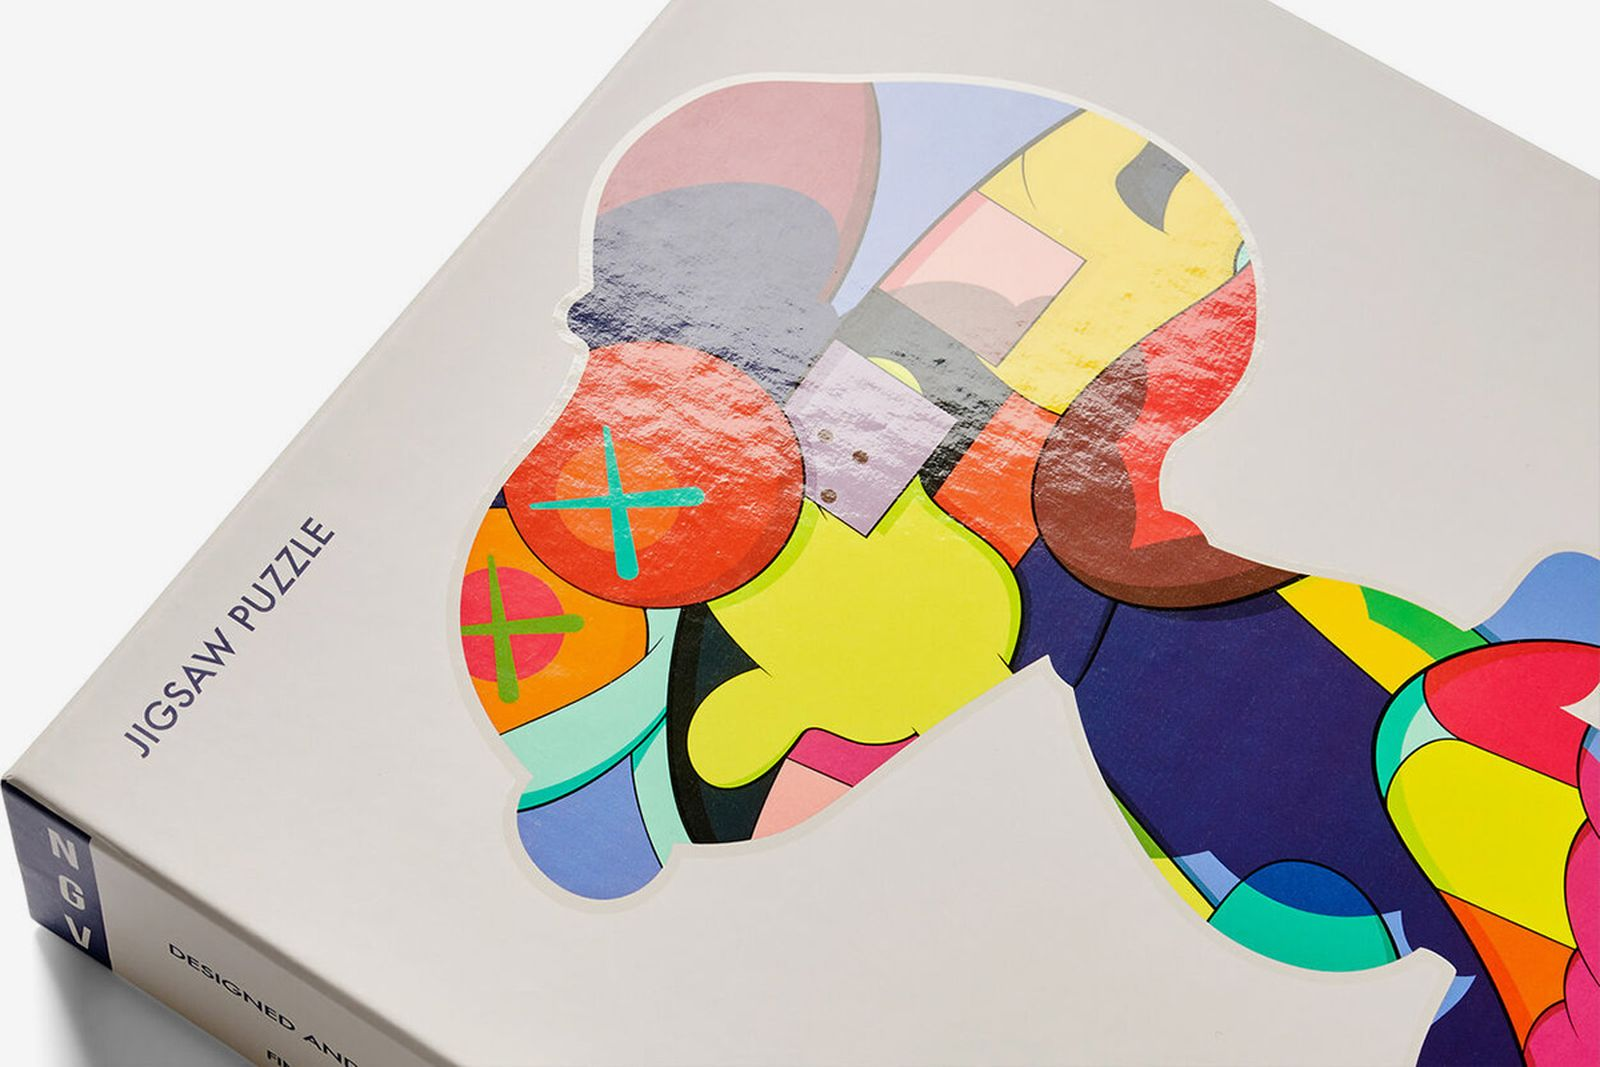 cool-puzzles-for-adults-kaws-puzzle-main